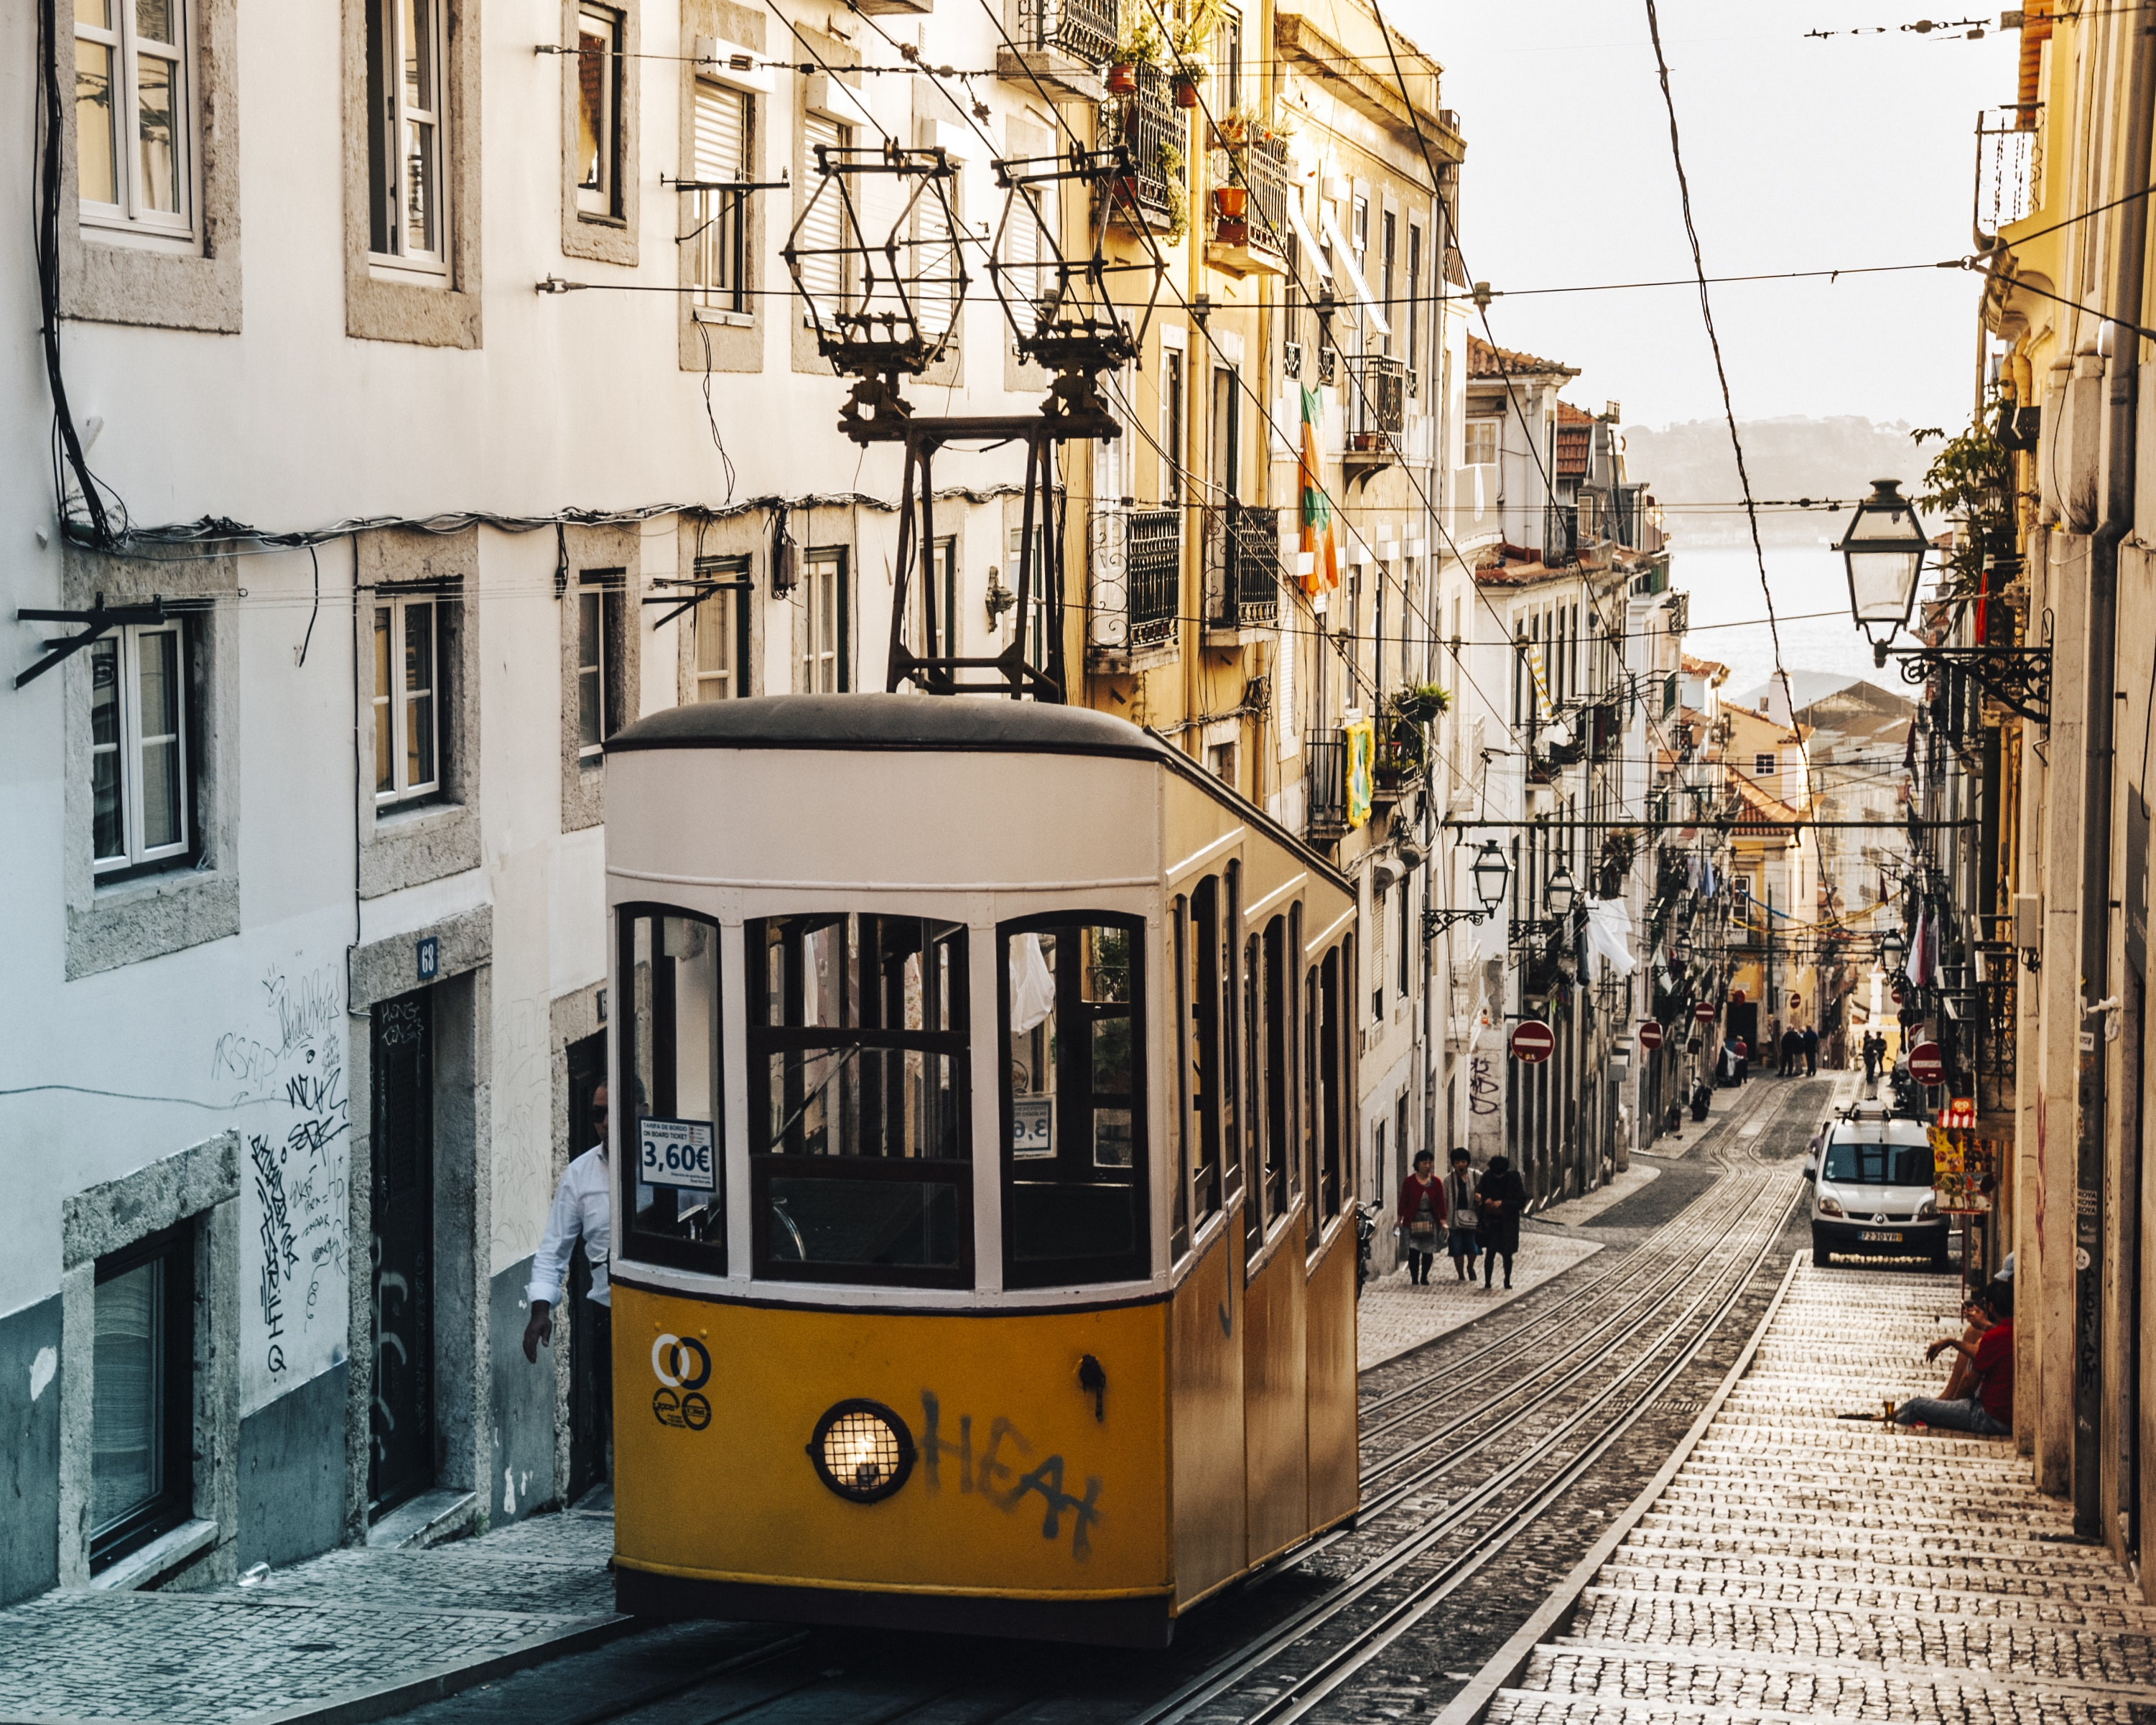 Yellow tram carriage suspended at the top of a narrow street with traditional architecture, Lisbon, Portugal